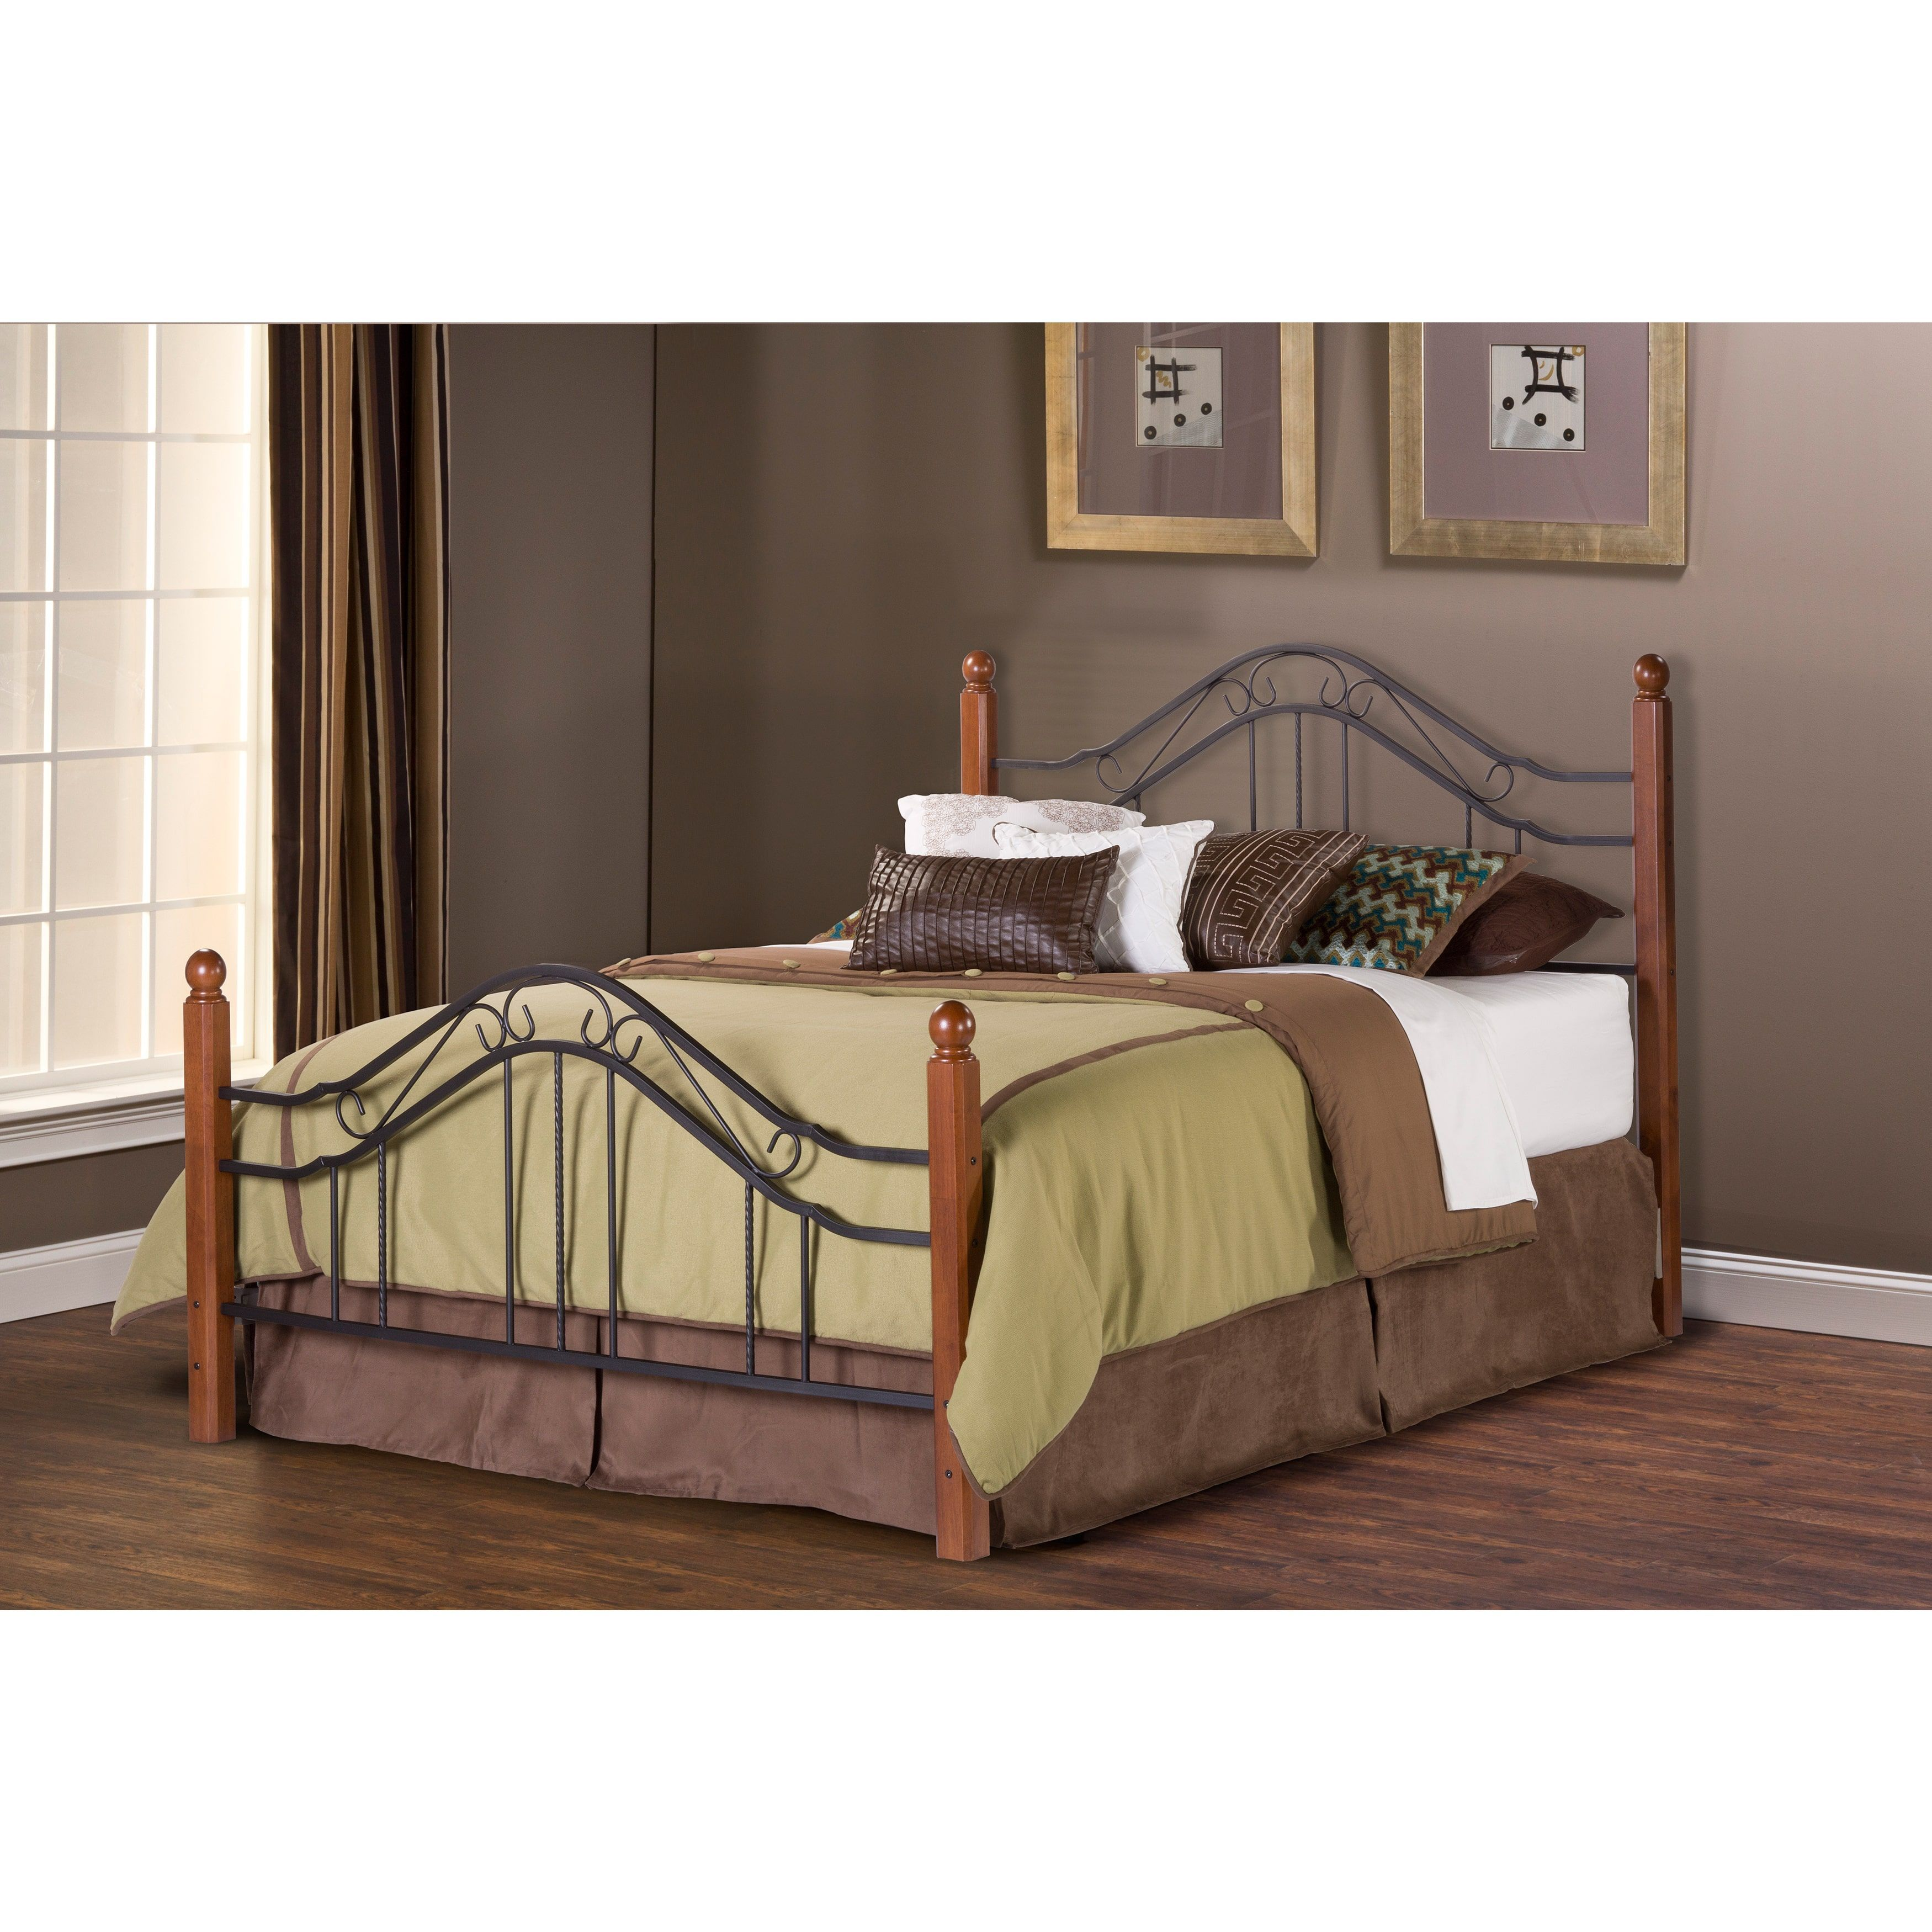 Hillsdale Madison Metal Frame Bed Set (Queen), Black